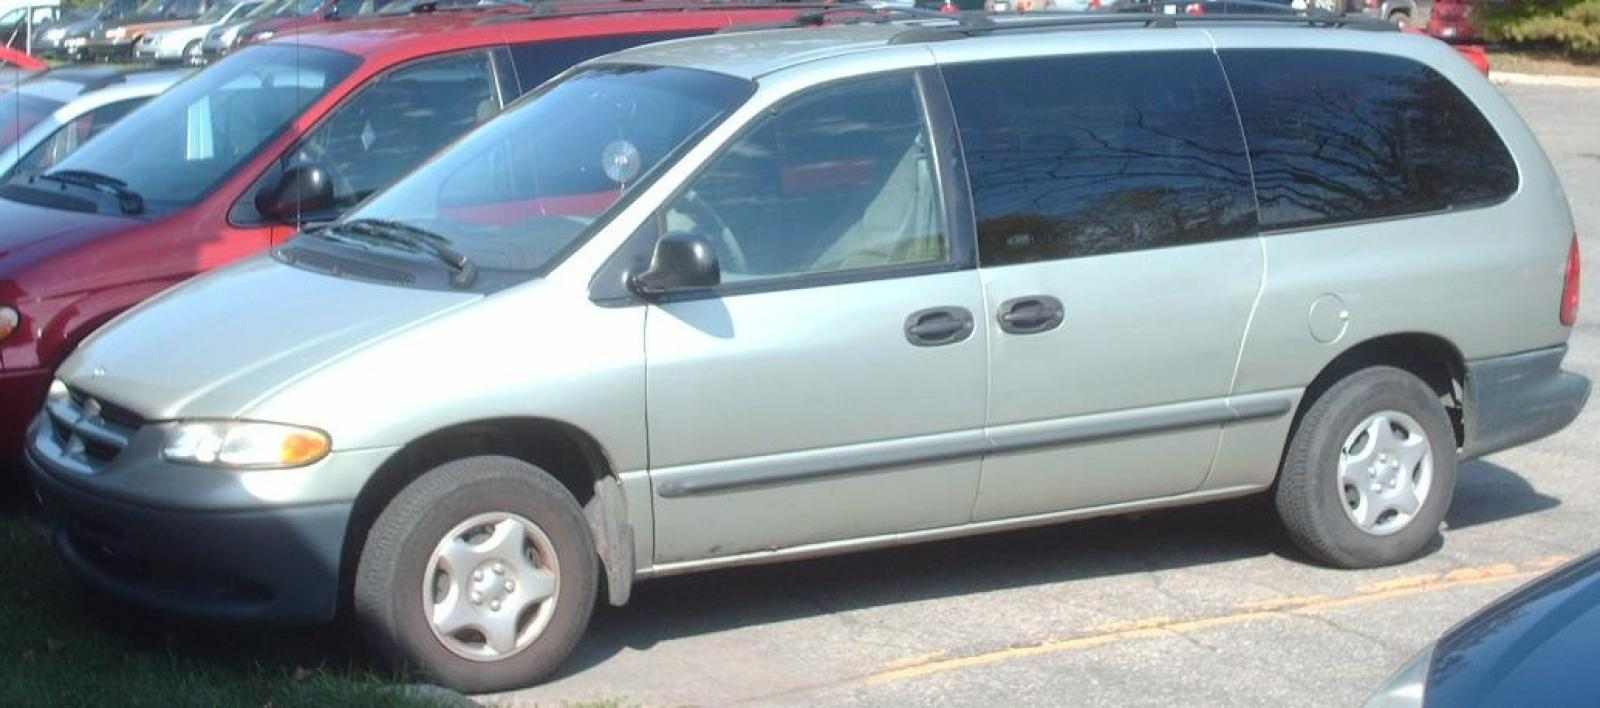 1996 Dodge Grand Caravan Information And Photos Zomb Drive